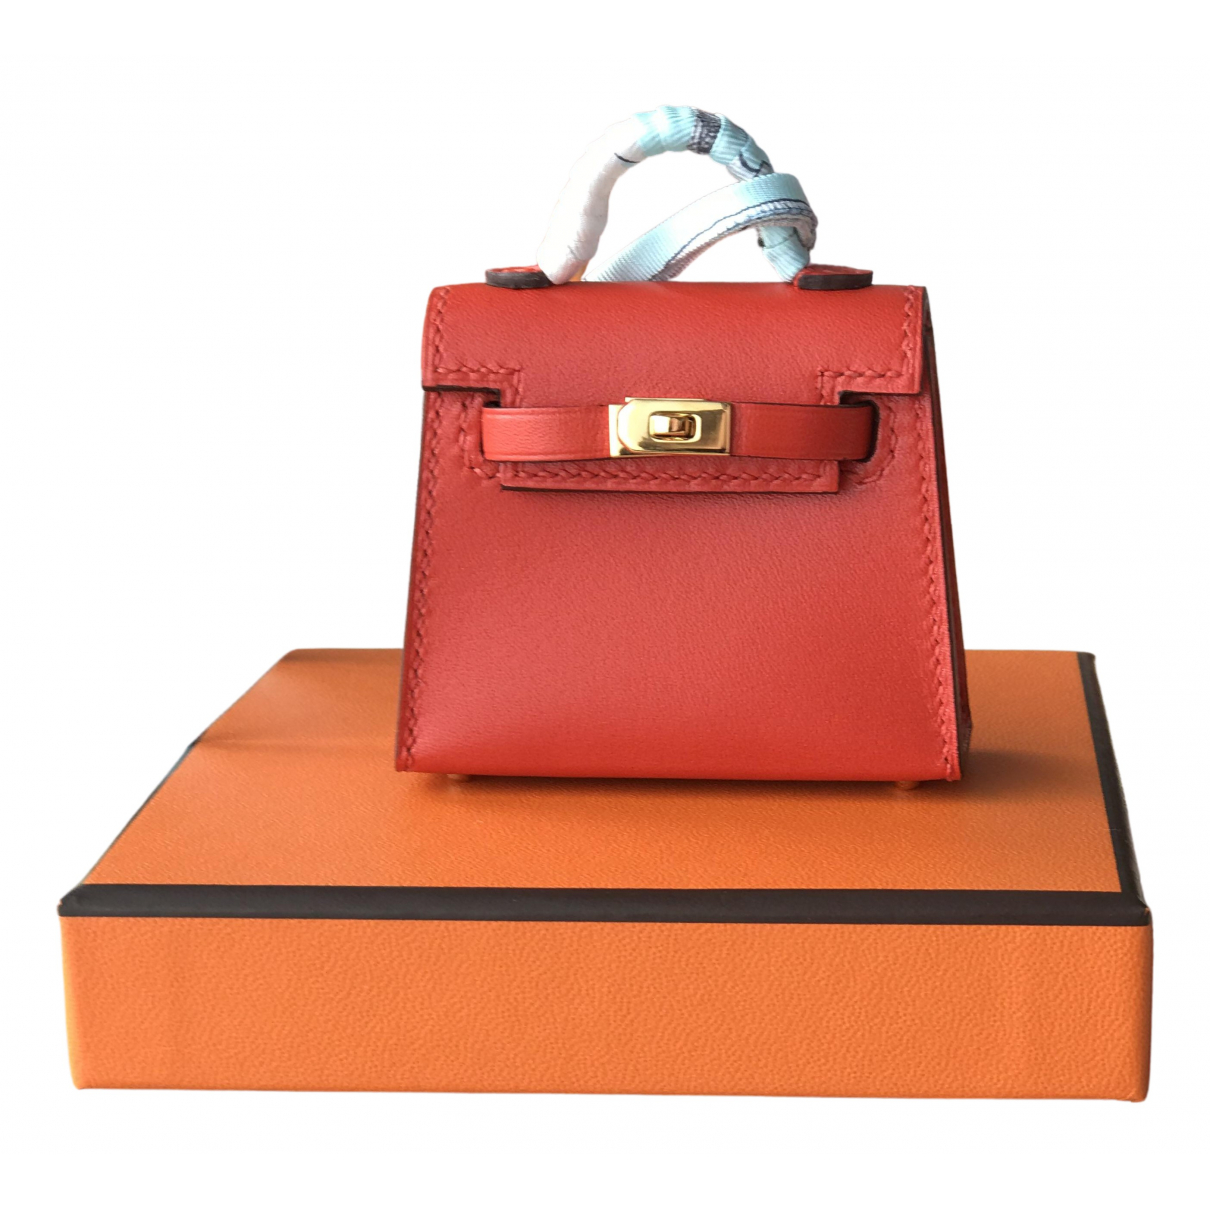 Hermes Kelly twilly charm Taschenschmuck in  Orange Leder